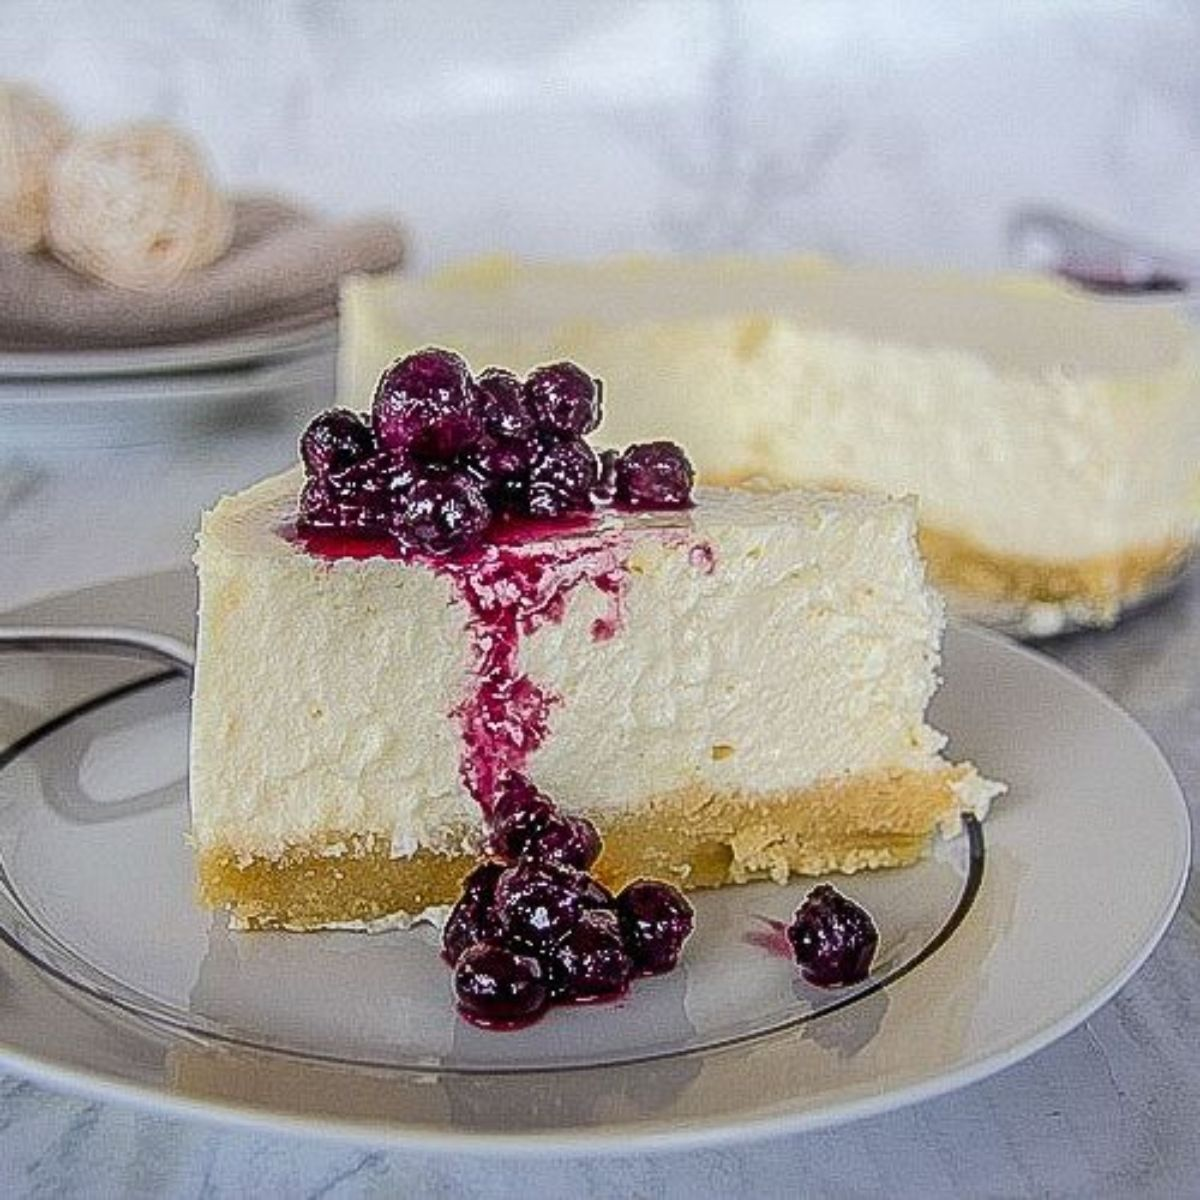 New York cheesecake slice sits on a plate with blueberry coulis srizzled on top